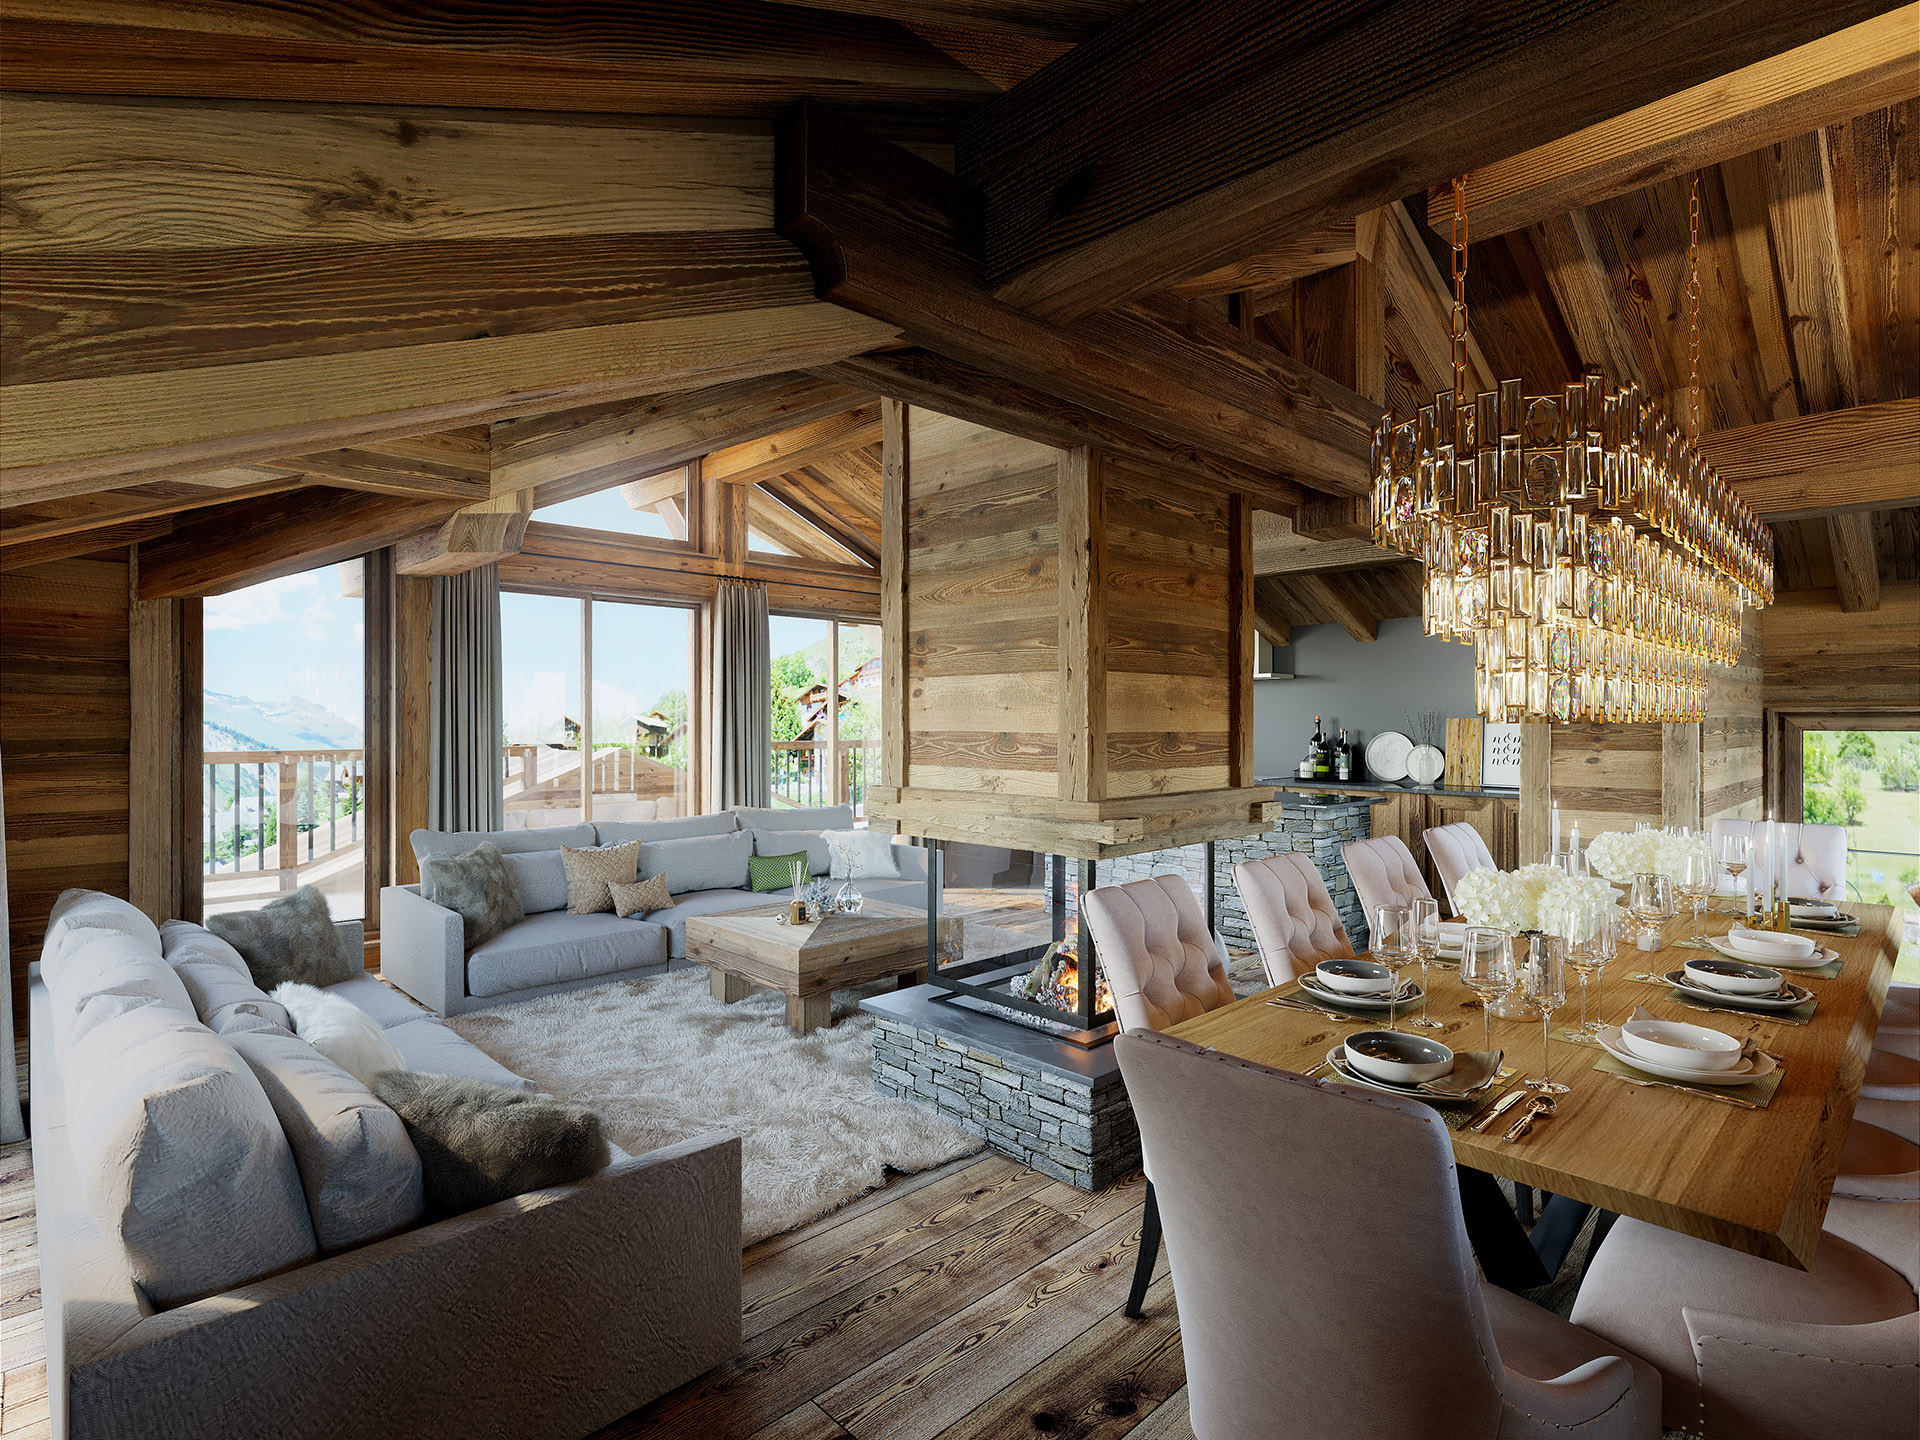 3D image of a rustic and modern apartment in a chalet